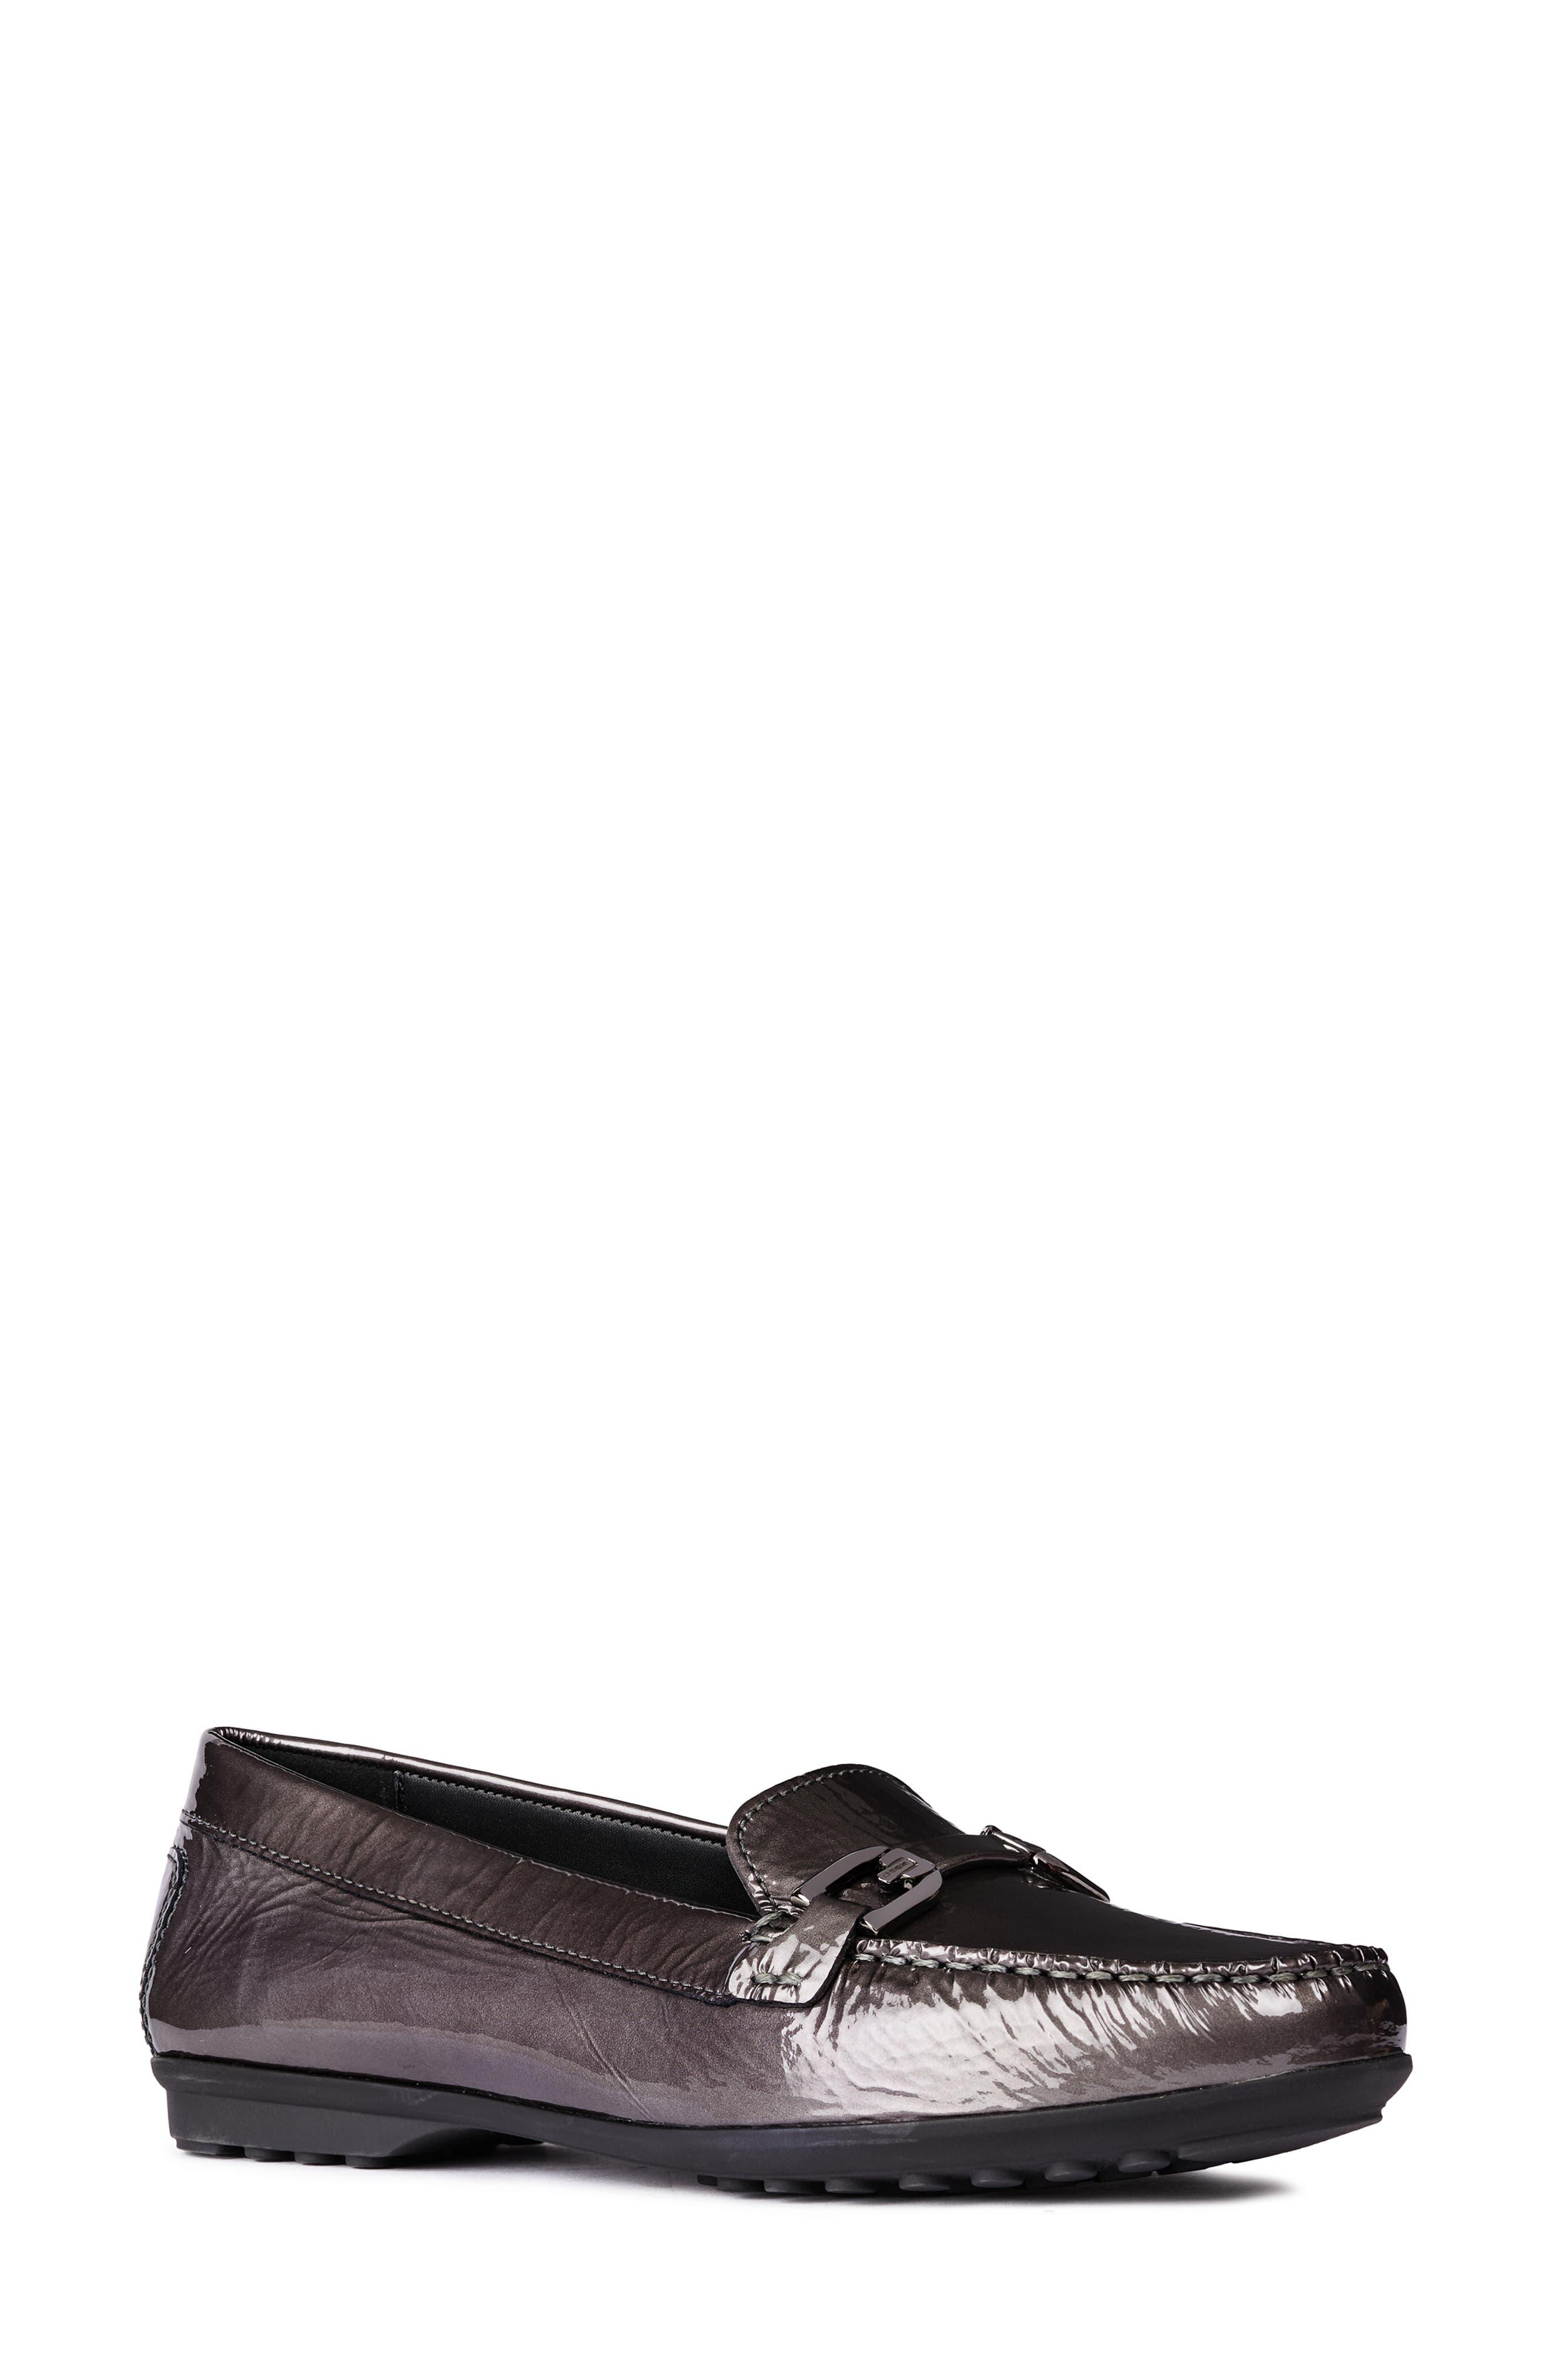 GEOX Elidia Loafer, Main, color, DARK GREY LEATHER